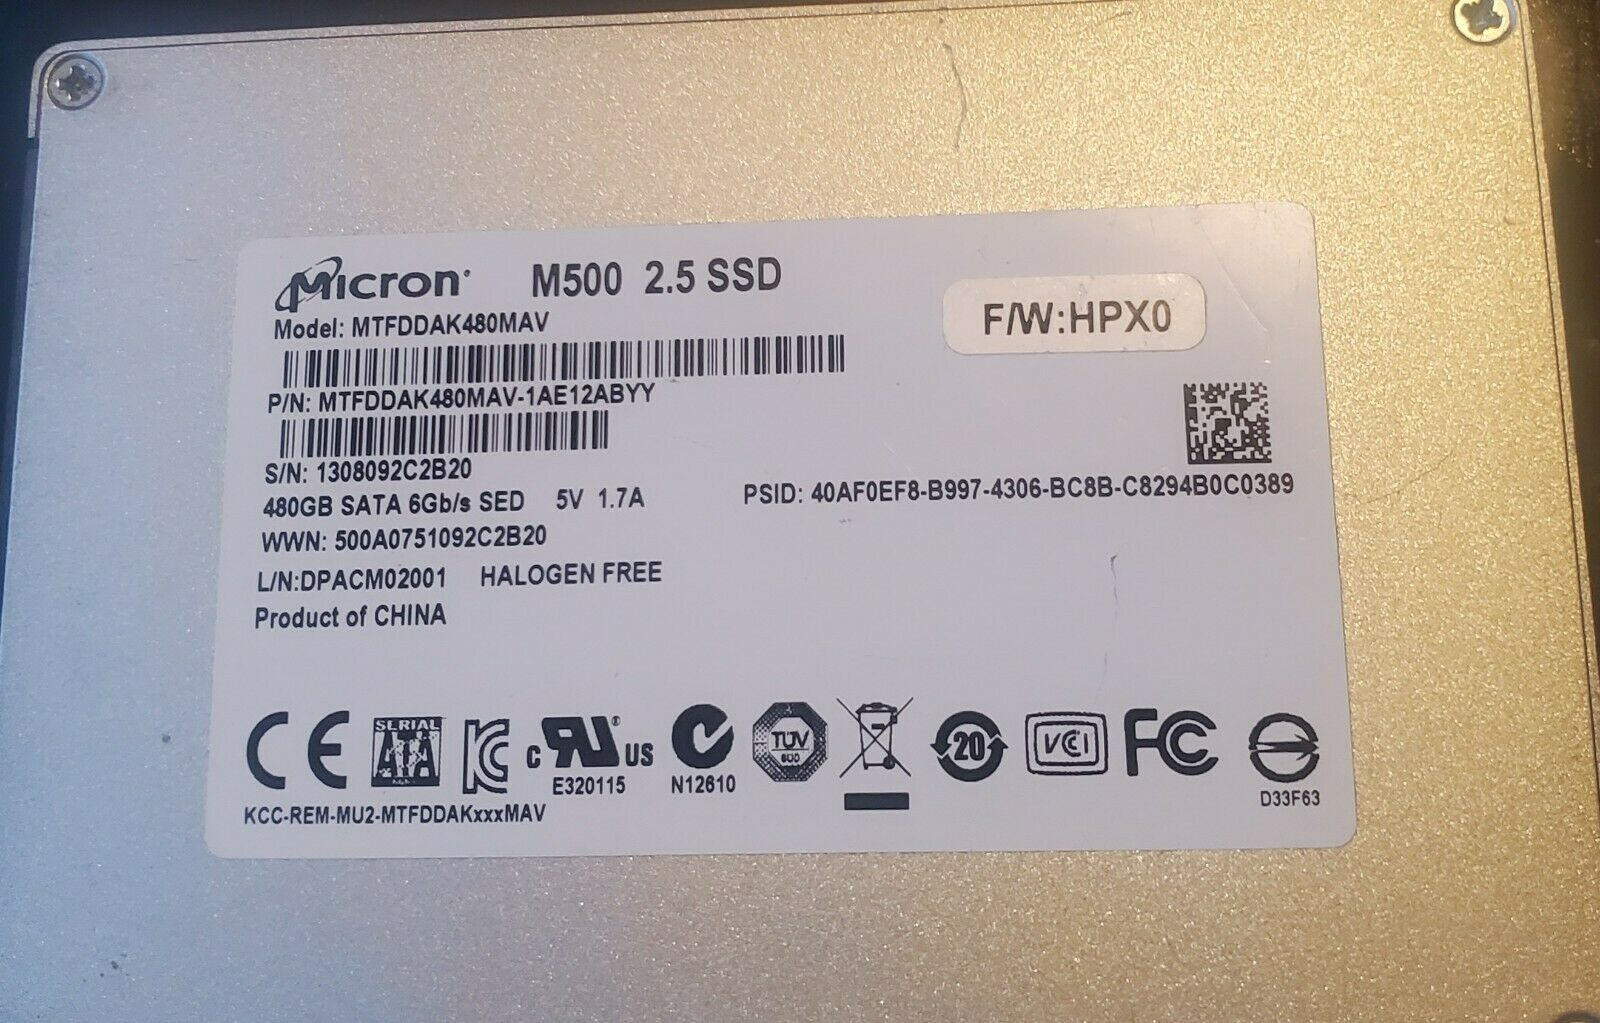 Samsung 860 EVO 500GB,Internal,2.5 inch (MZ76E500BAM) Solid State Drive. Buy it now for 49.00